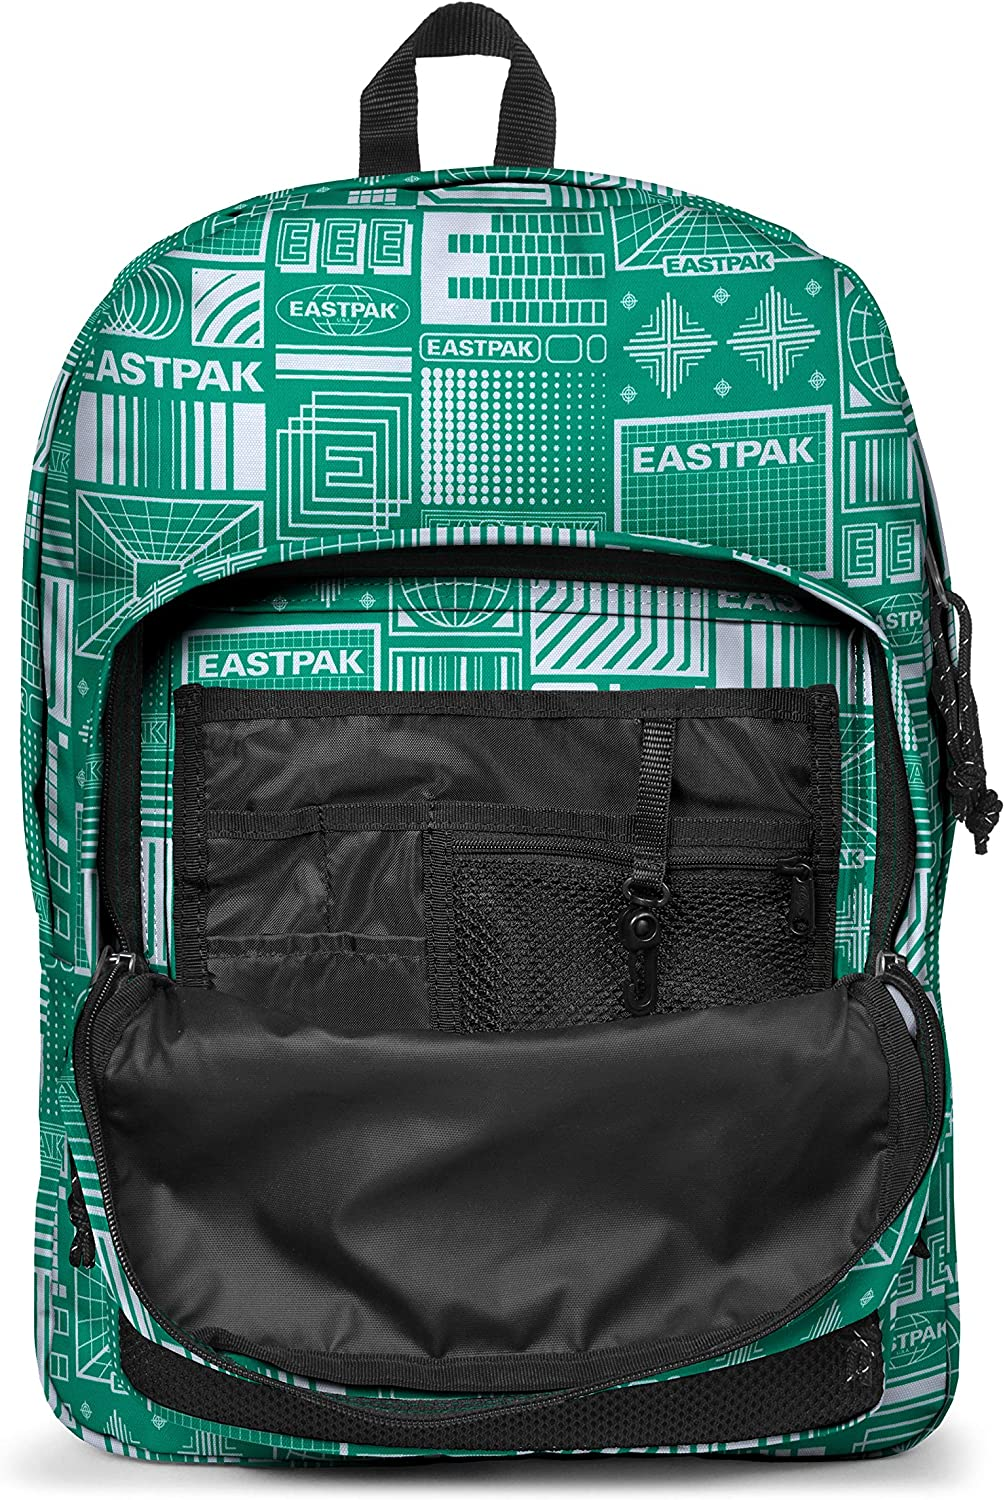 Eastpak Pinnacle Sac /à Dos 38 L 46Z Bold Promising 42 cm